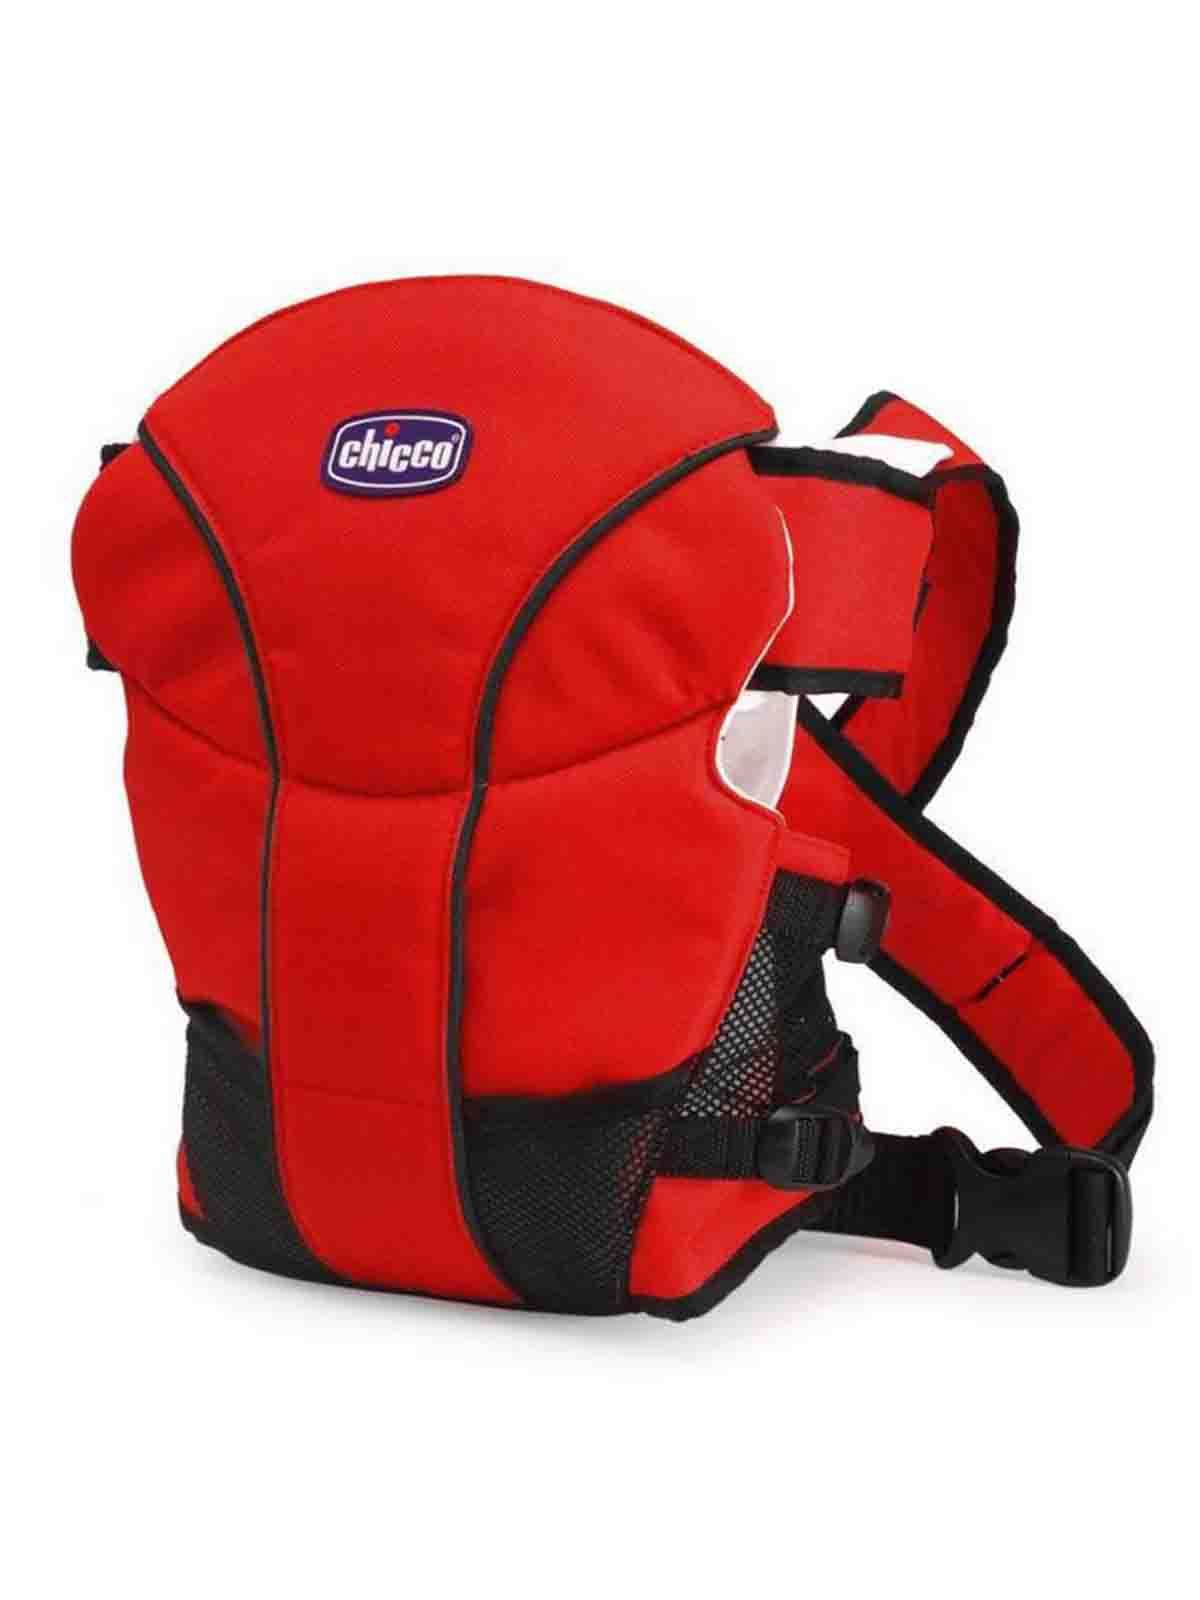 Baby Carriers Ergonomic Baby Backpacks with Hip Seat for All Seasonsfor waist 27.5 to 43 Infant /& Toddlers Adjustable Waistband